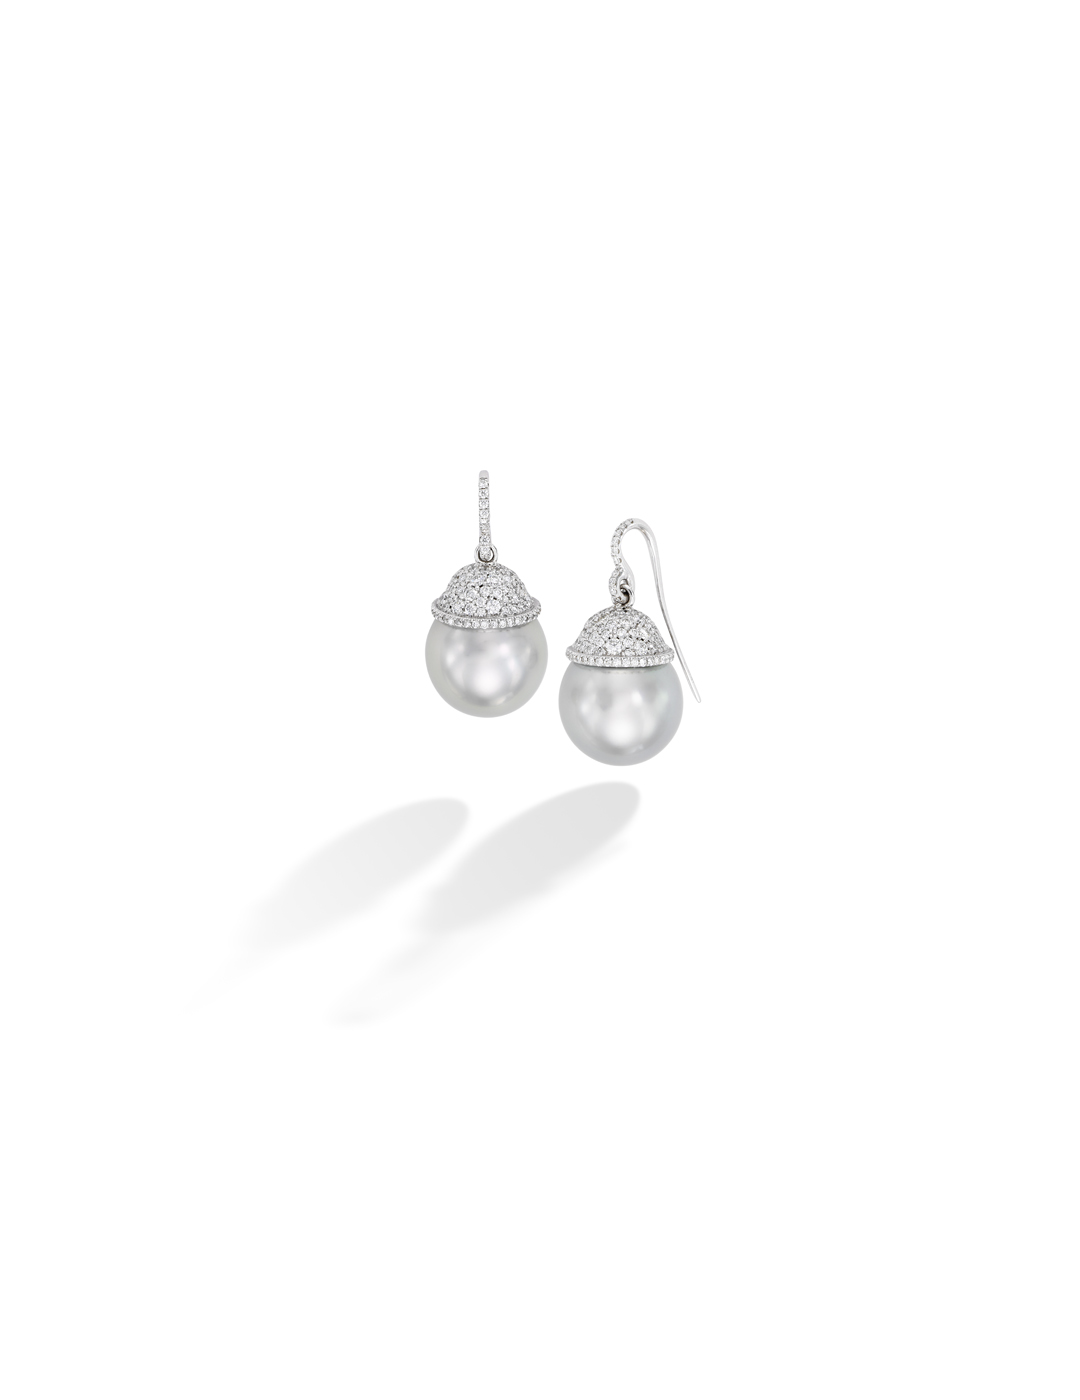 mish_products_earrings_PaveDome-FW-Tah-ER-1